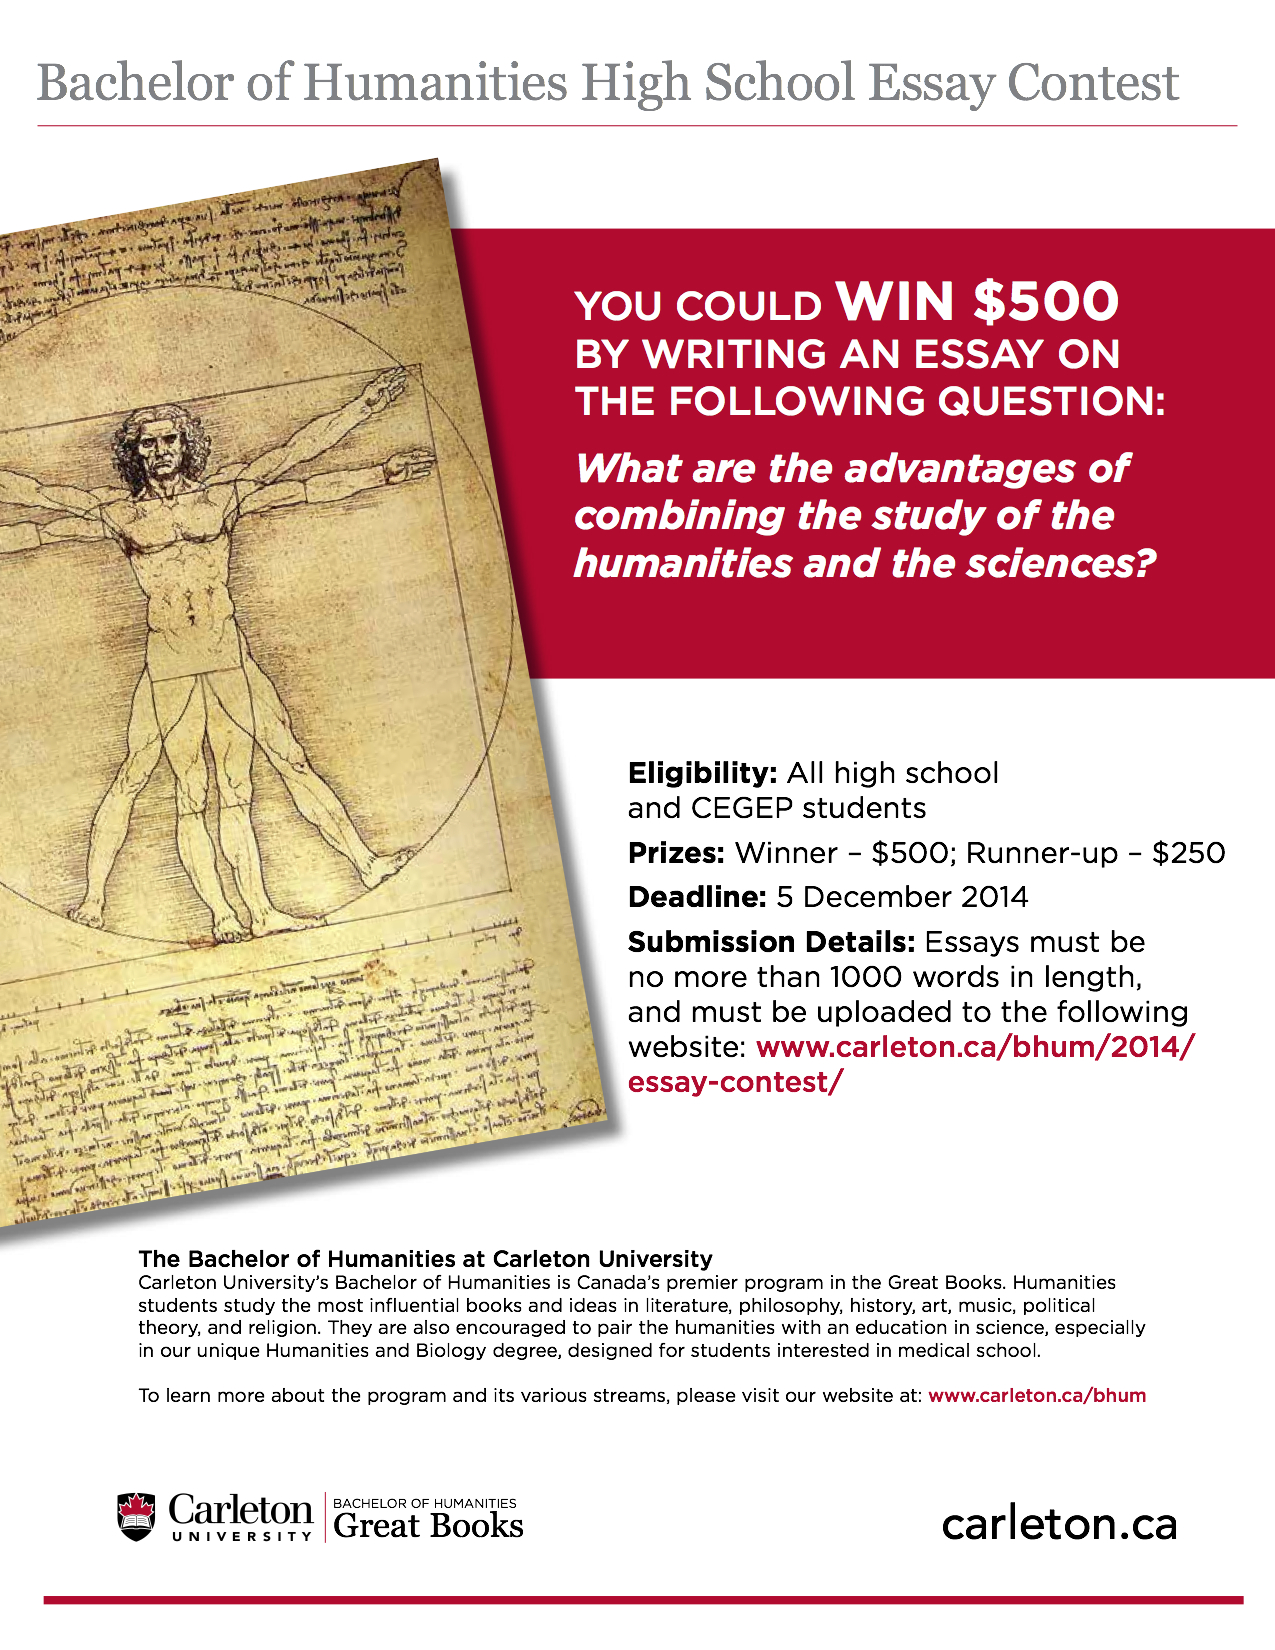 2014 bachelor of humanities high school essay contest